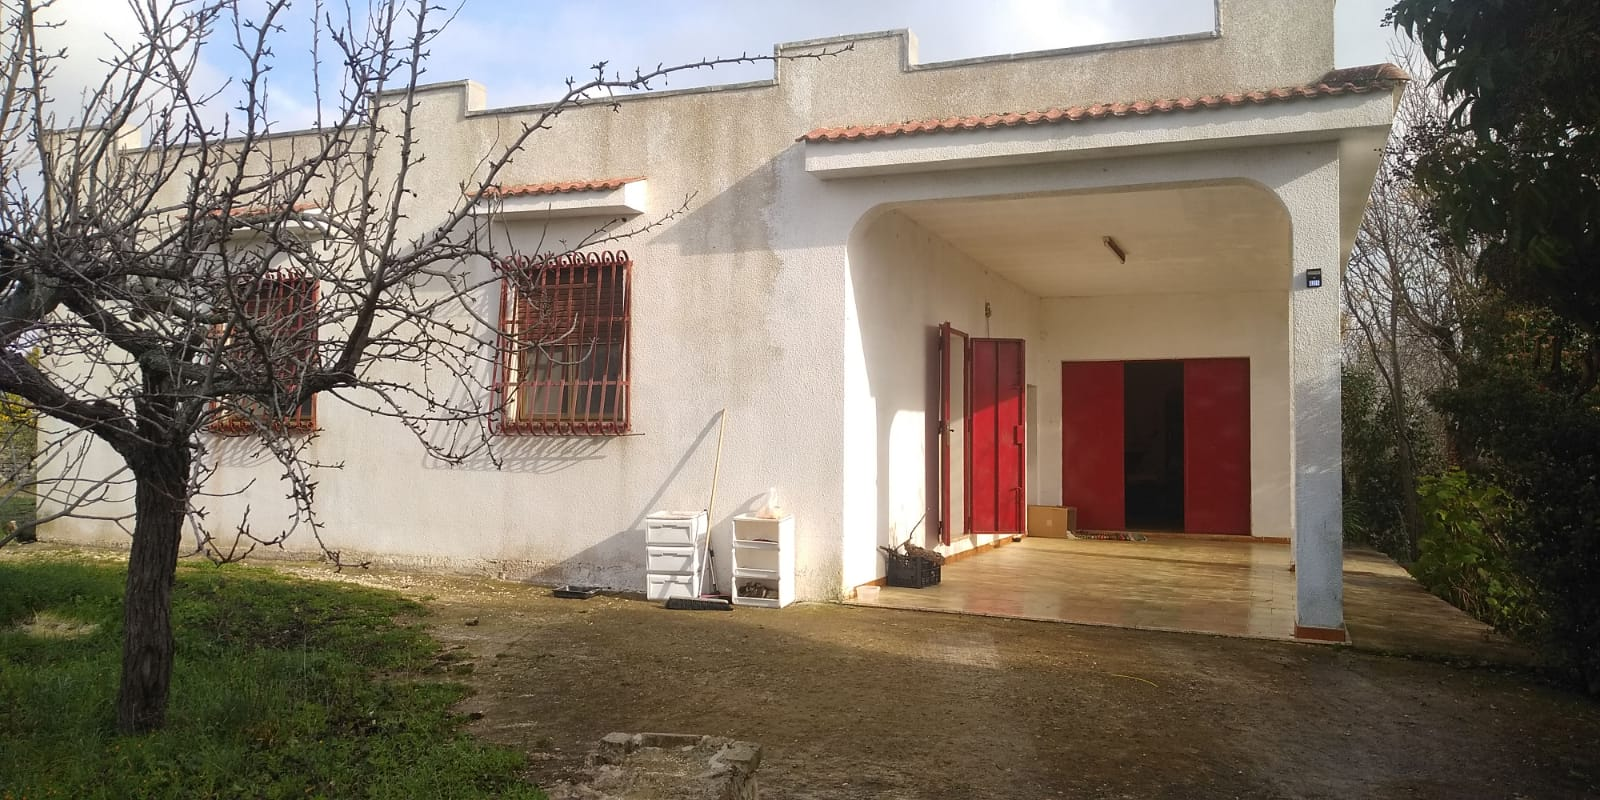 Country house for sale in good conditions, with plot of land